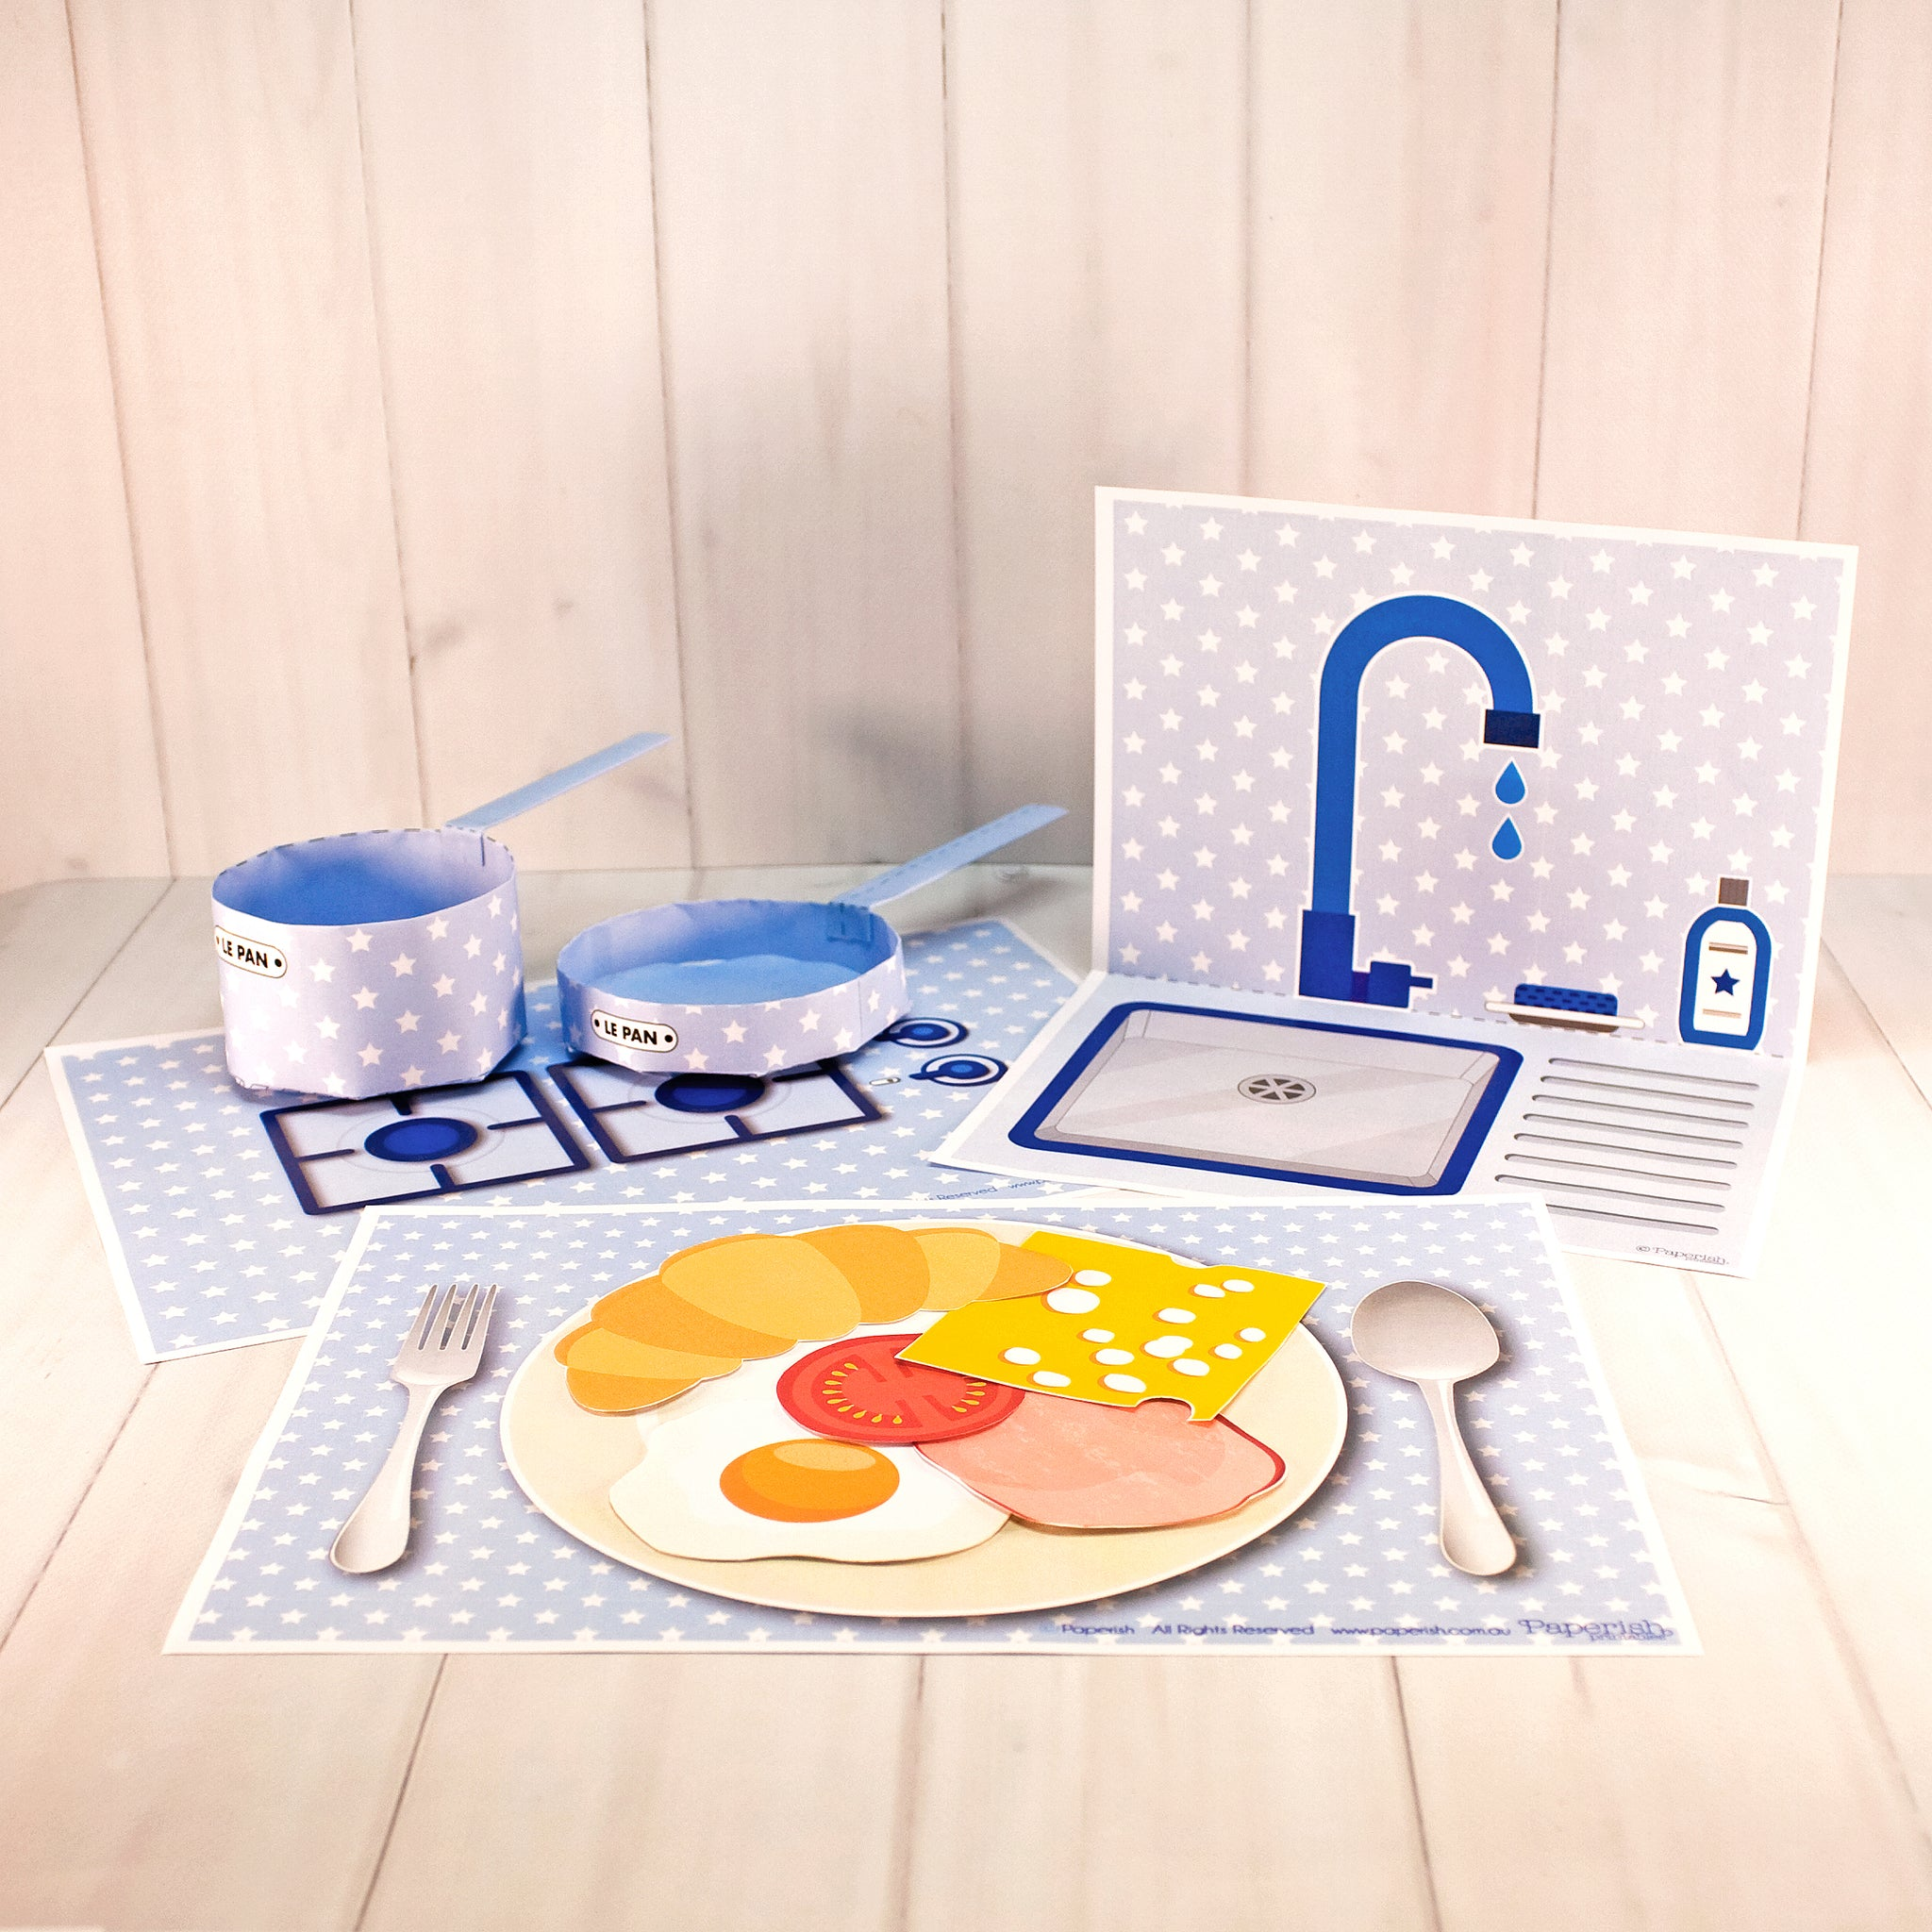 Kitchen set | Blue Star | paper craft pattern | simple crafts kids